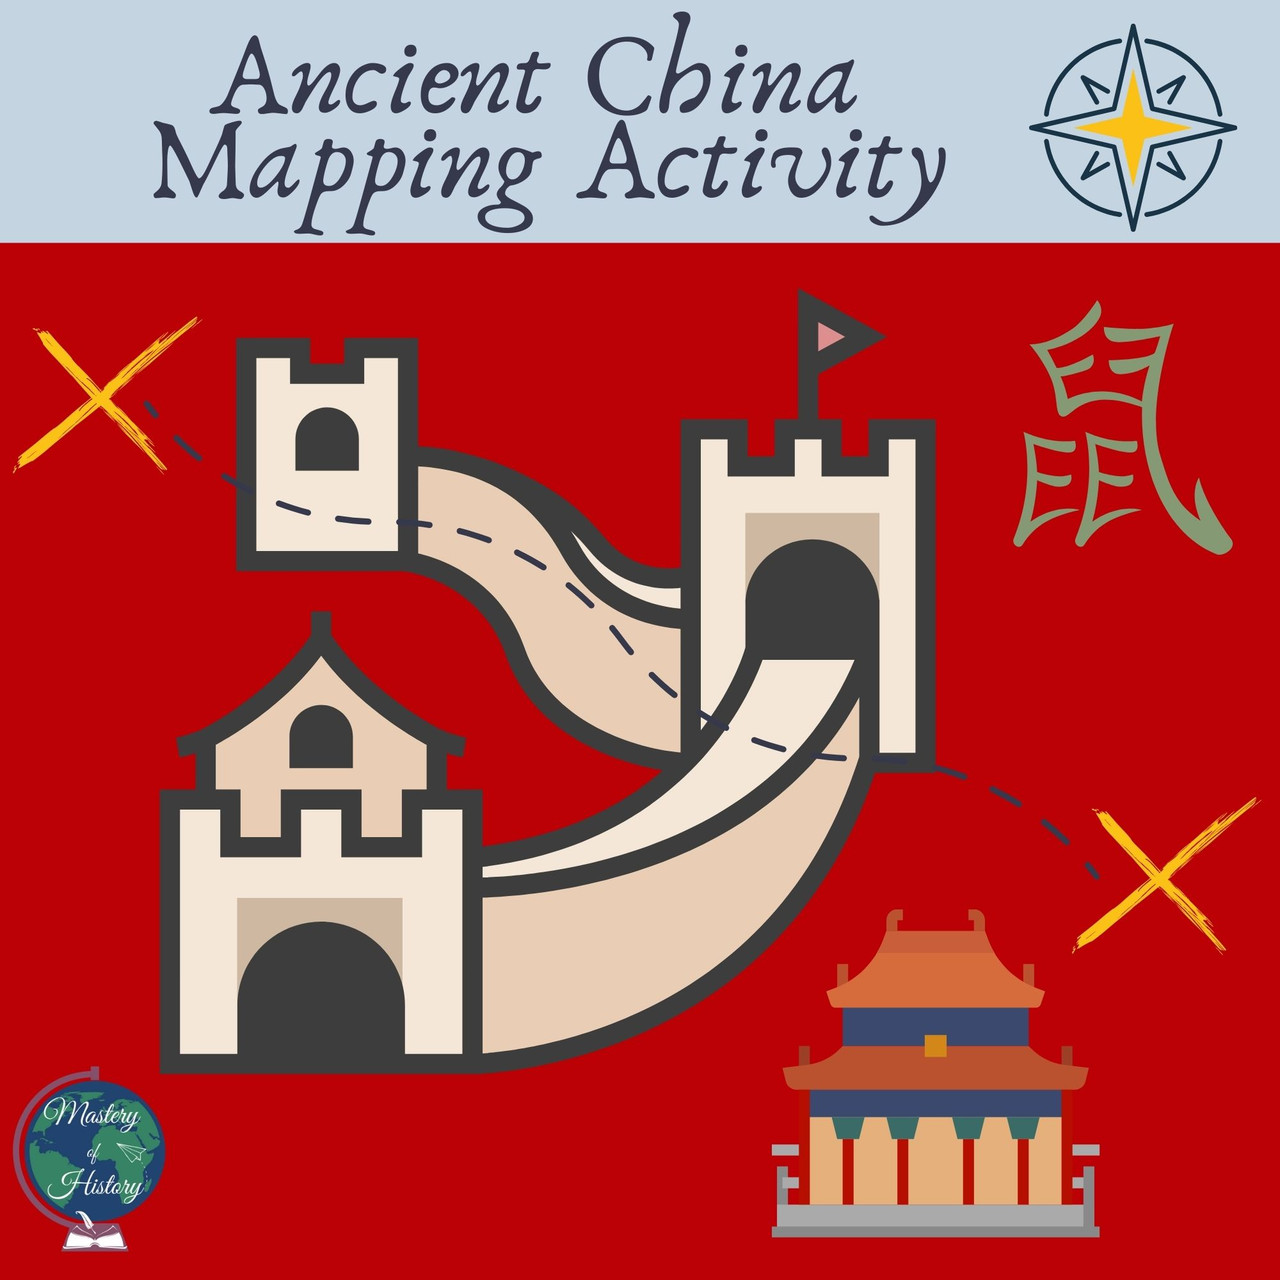 hight resolution of Ancient China Mapping Activity